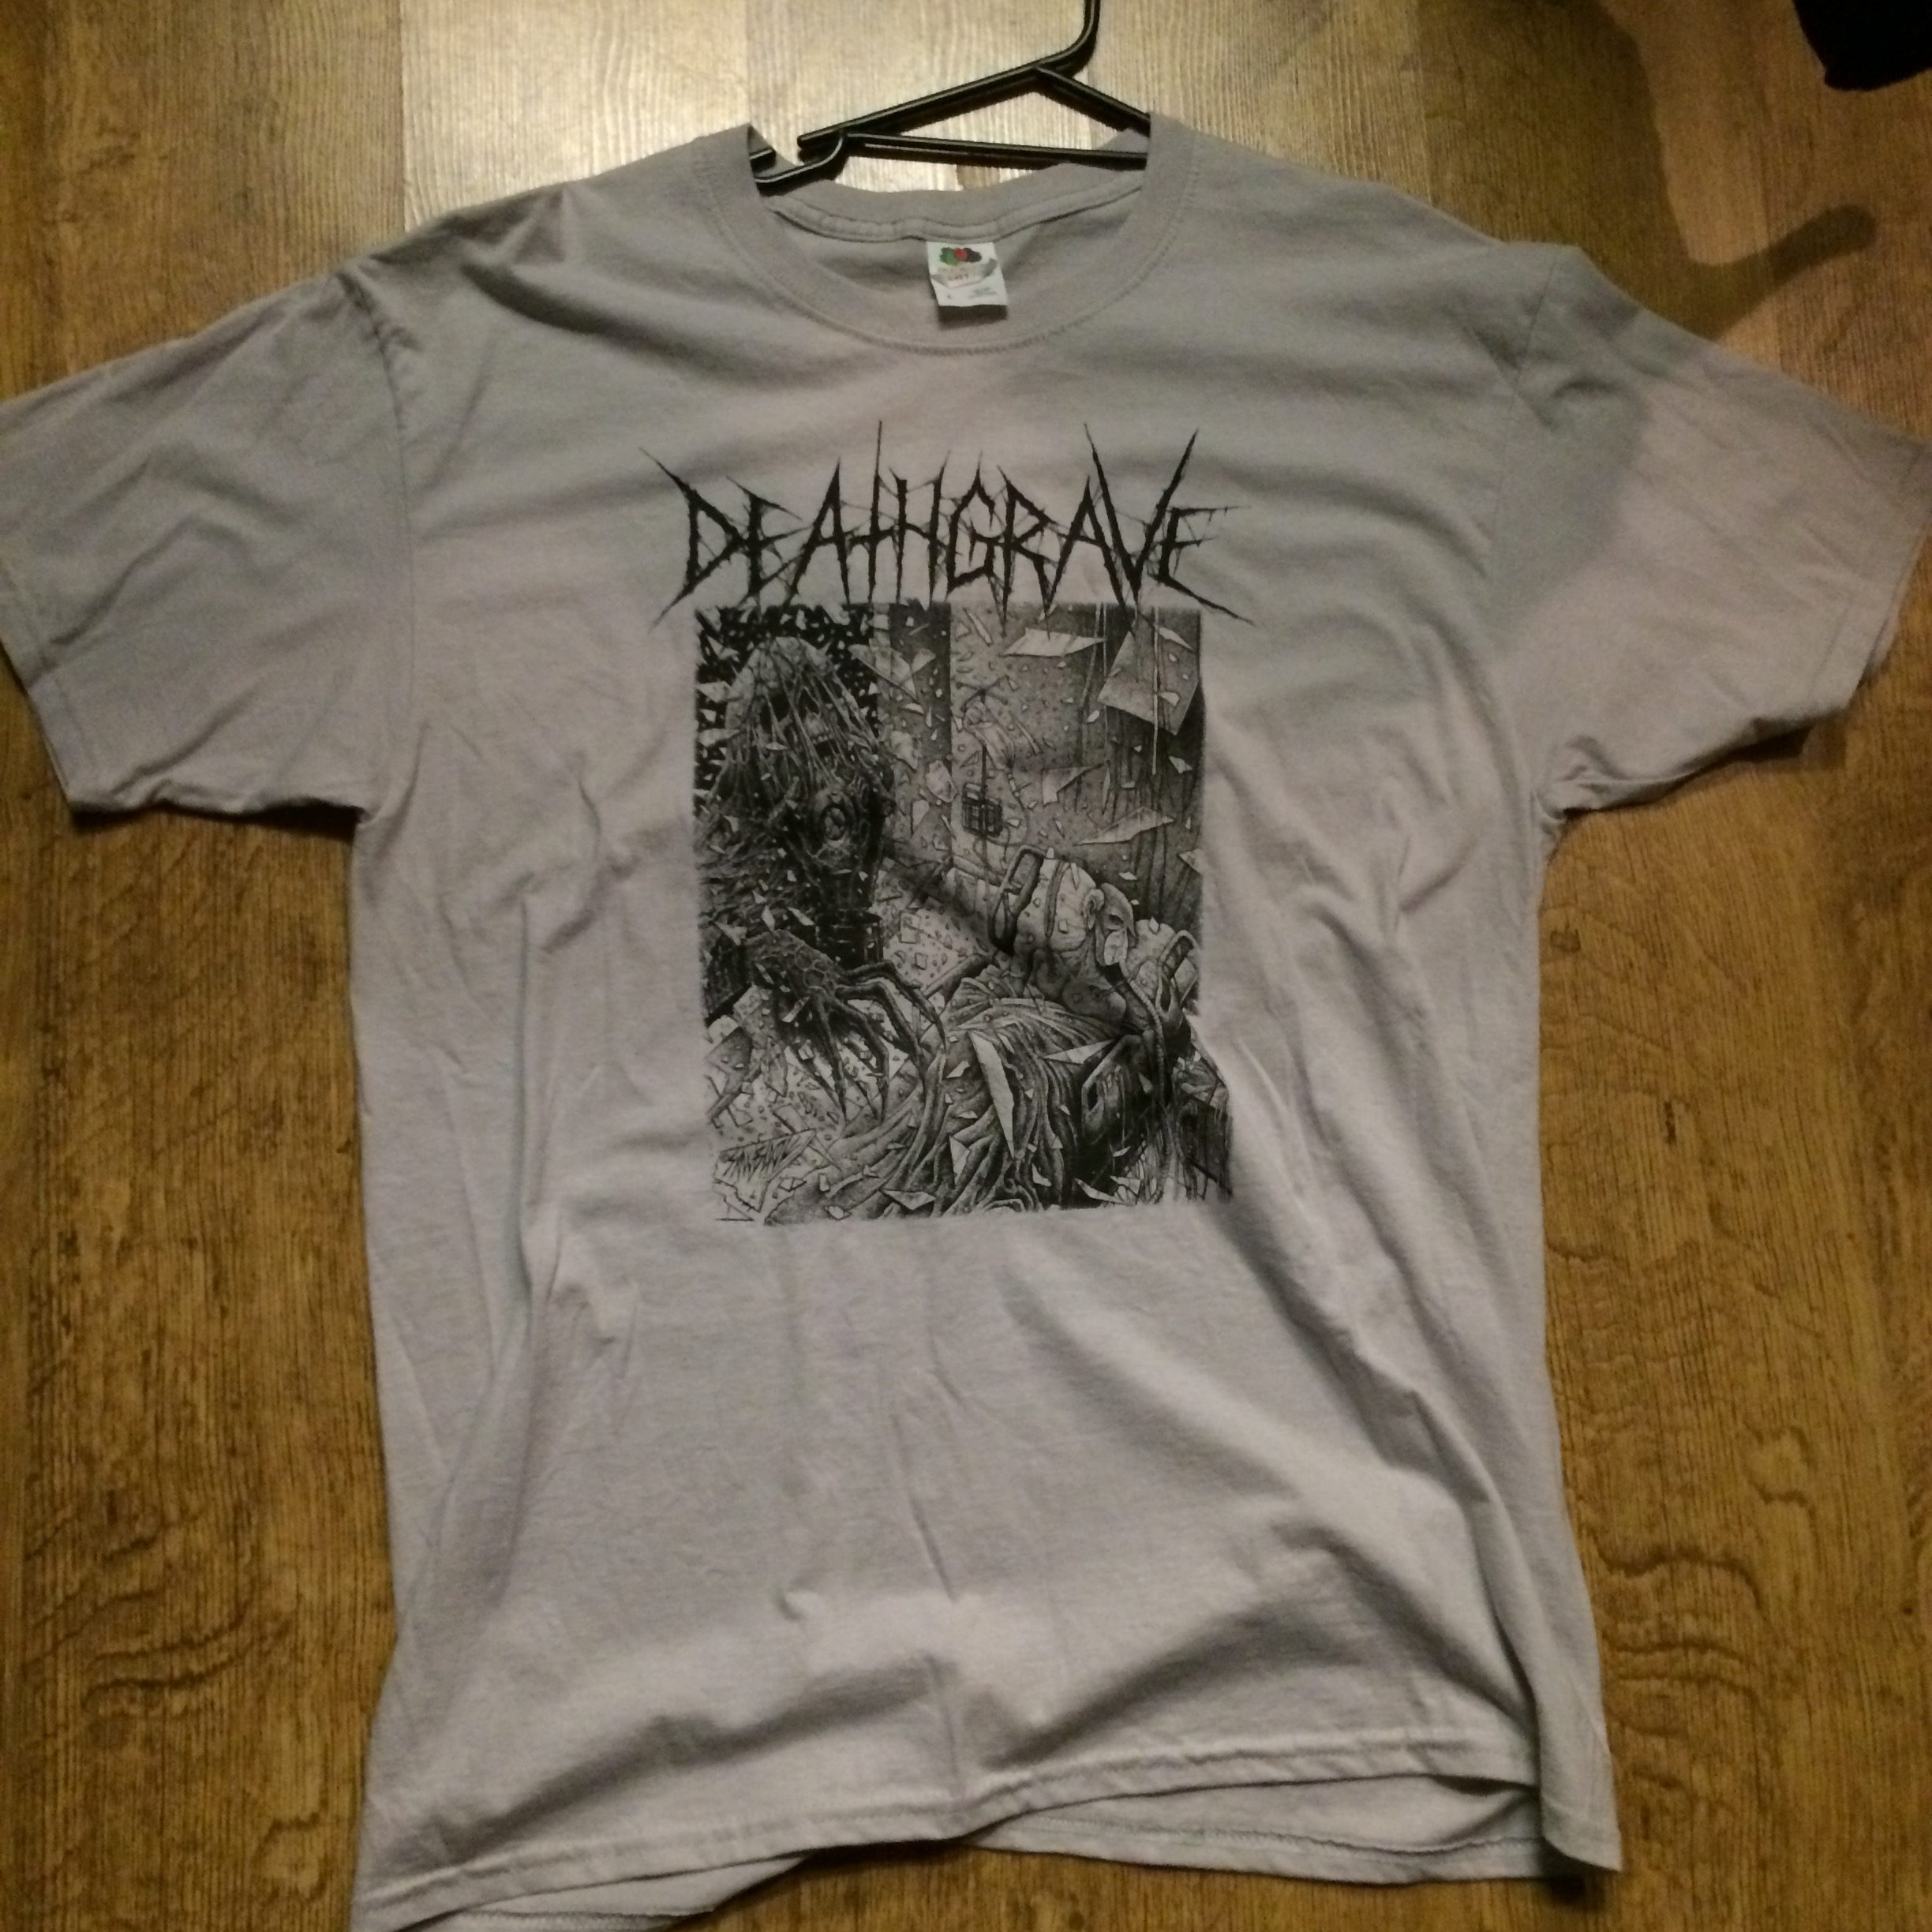 Photo of the DeathGrave -